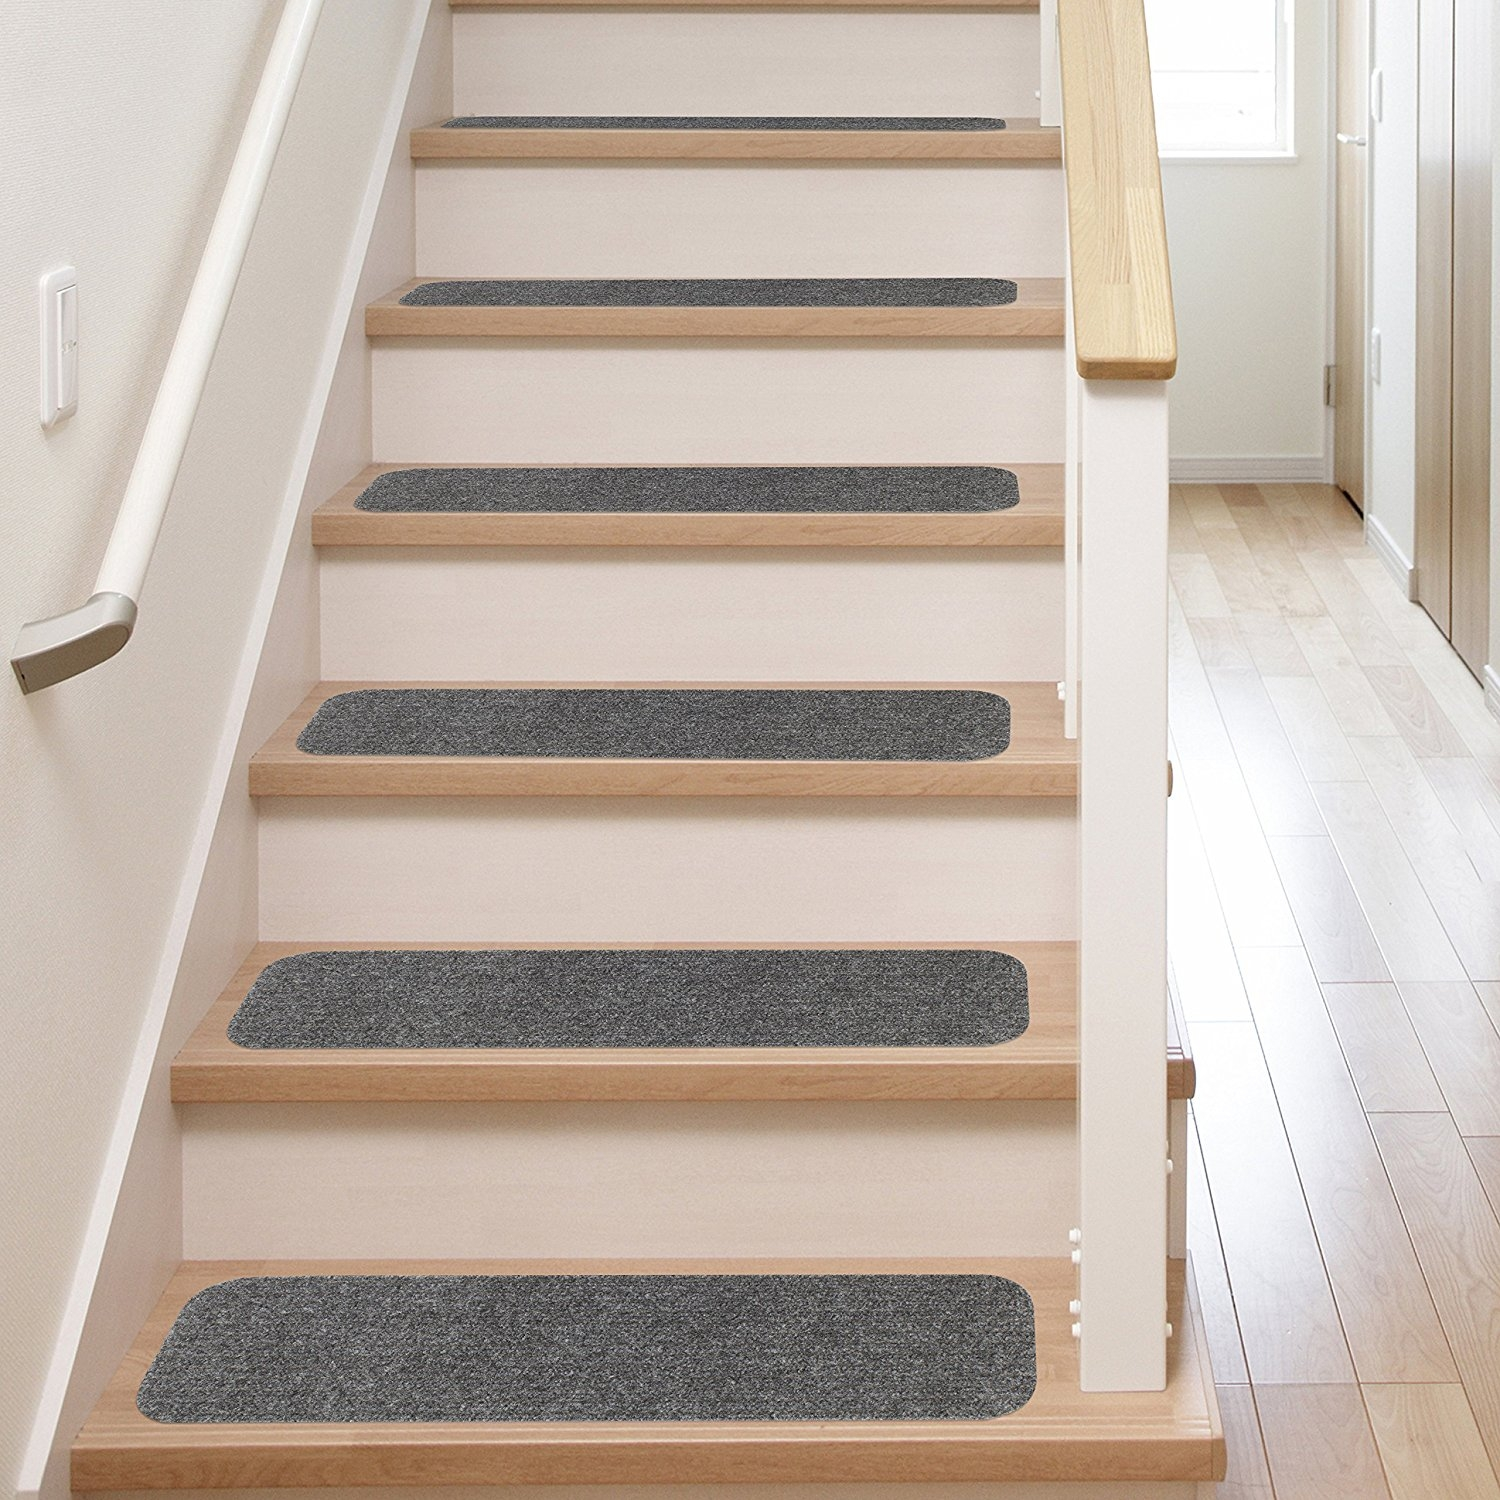 13 Stair Treads Non Slip Carpet Pads Easy Tape Installation Throughout Carpet Treads For Stairs (#1 of 20)